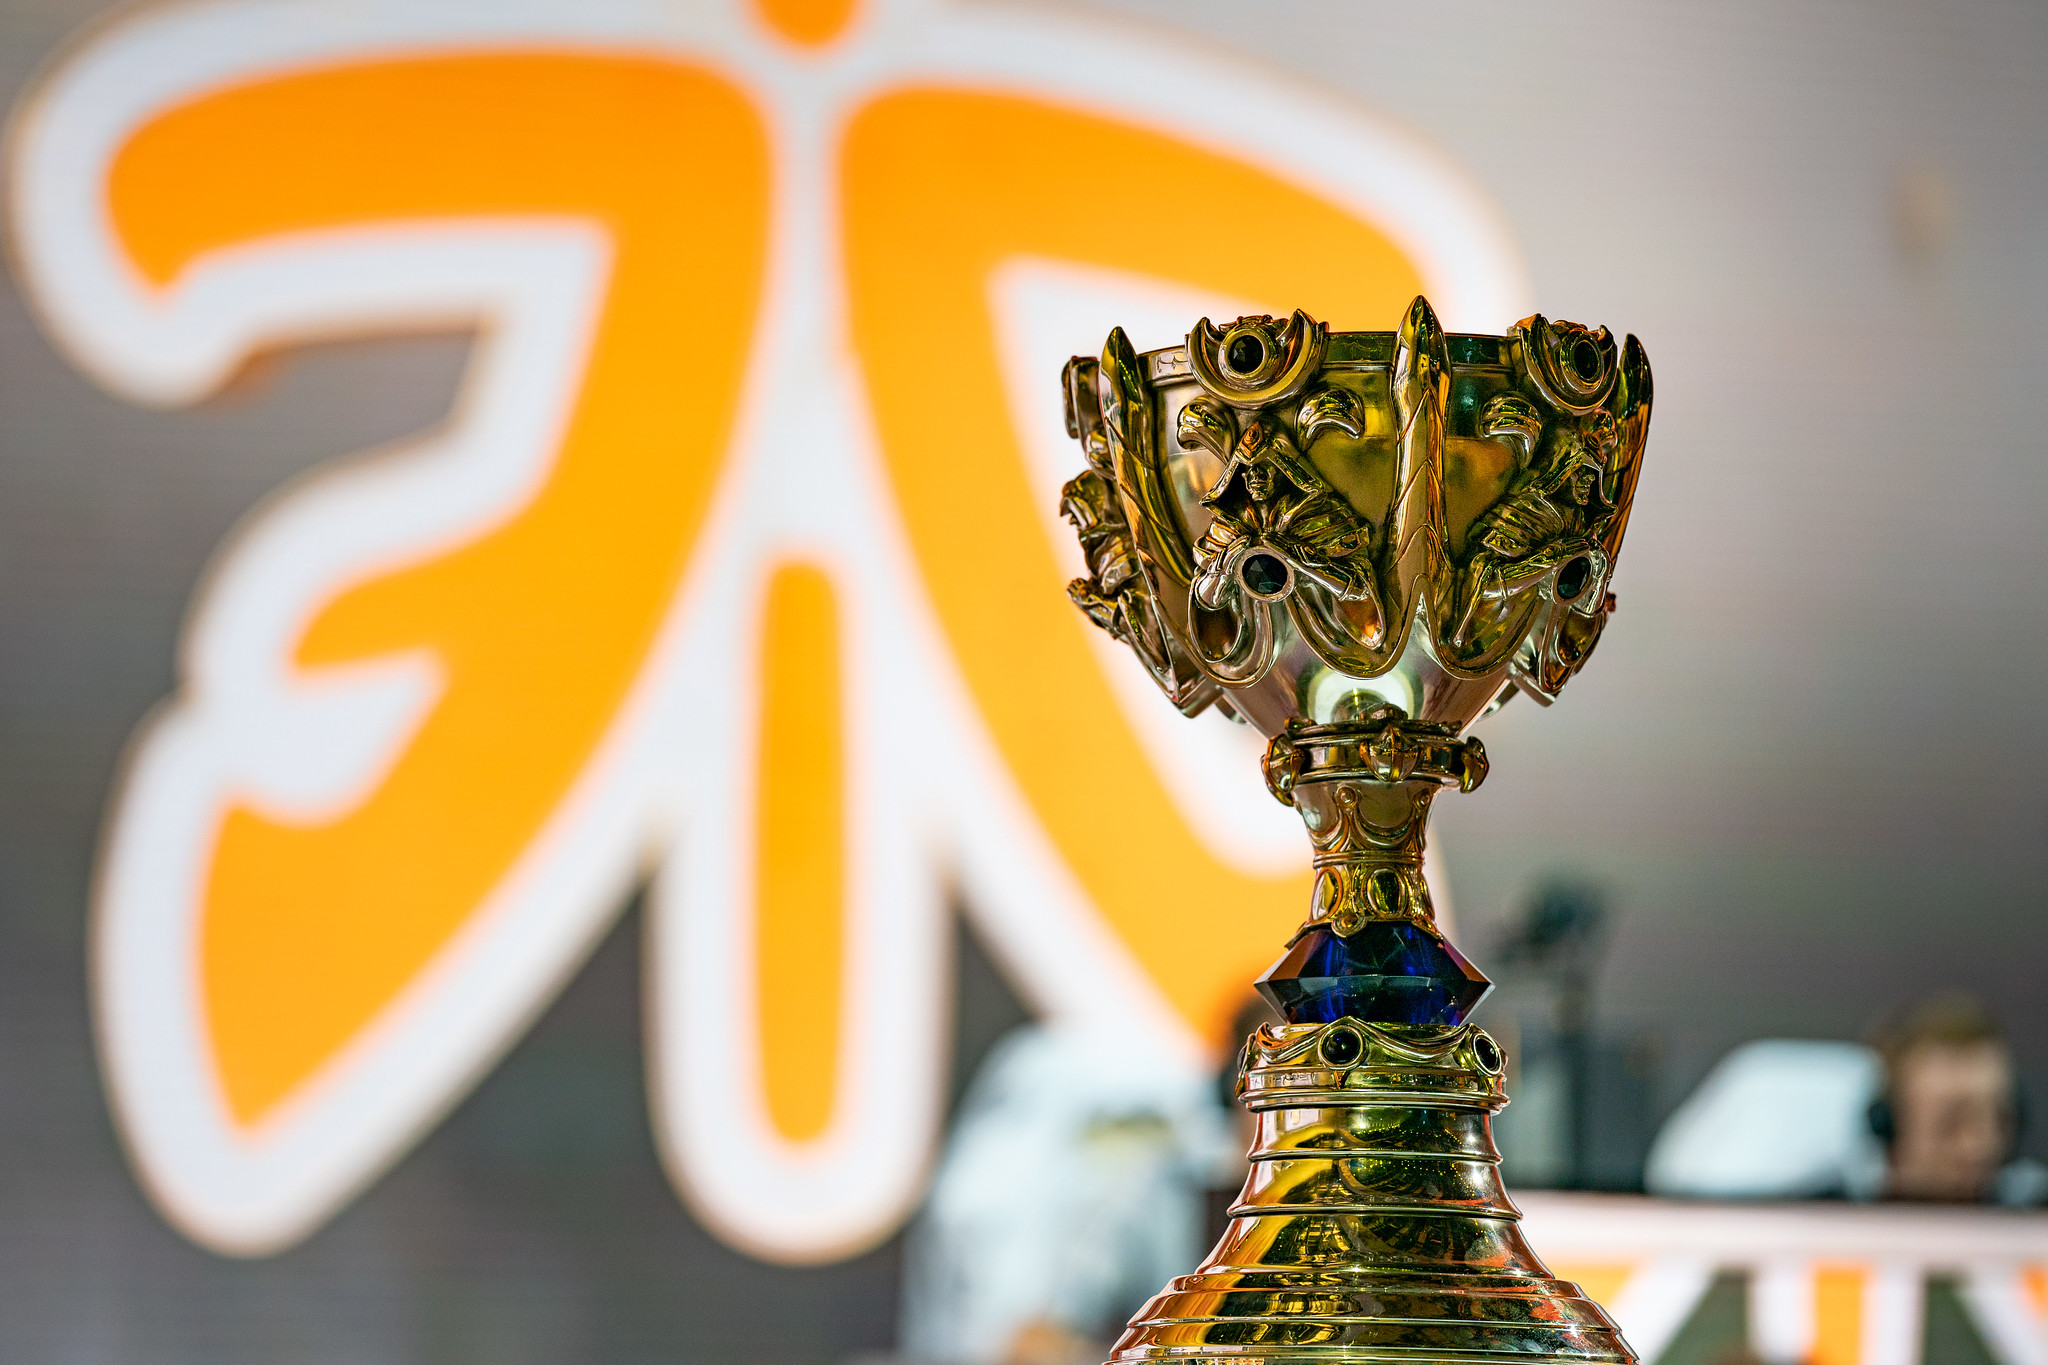 Season 1 winners Fnatic is the only returning title-holders, after Chinese champions FunPlus Phoenix and Invictus Gaming failed to qualify.